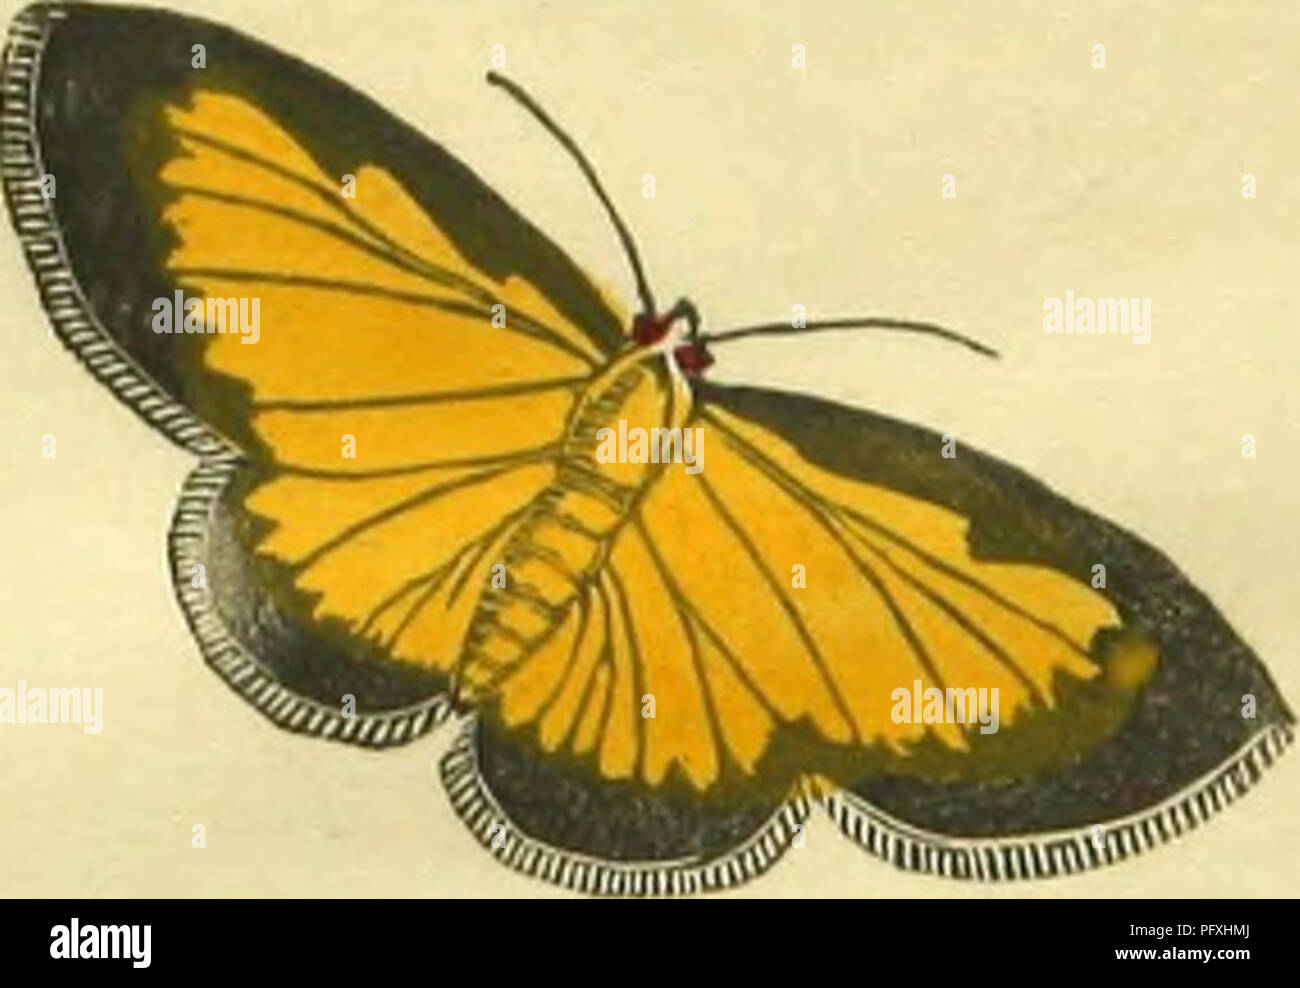 . The book of butterflies, sphinges, and moths; illustrated by one hundred and forty-four engravings, coloured after nature. Lepidoptera. THE GOLDEN YRLLOW MOTH. 1'halana Flaviolata India.. Please note that these images are extracted from scanned page images that may have been digitally enhanced for readability - coloration and appearance of these illustrations may not perfectly resemble the original work.. Brown, Thomas, 1785-1862. London, Whittaker & Co. ; [etc. ,etc. ] - Stock Image